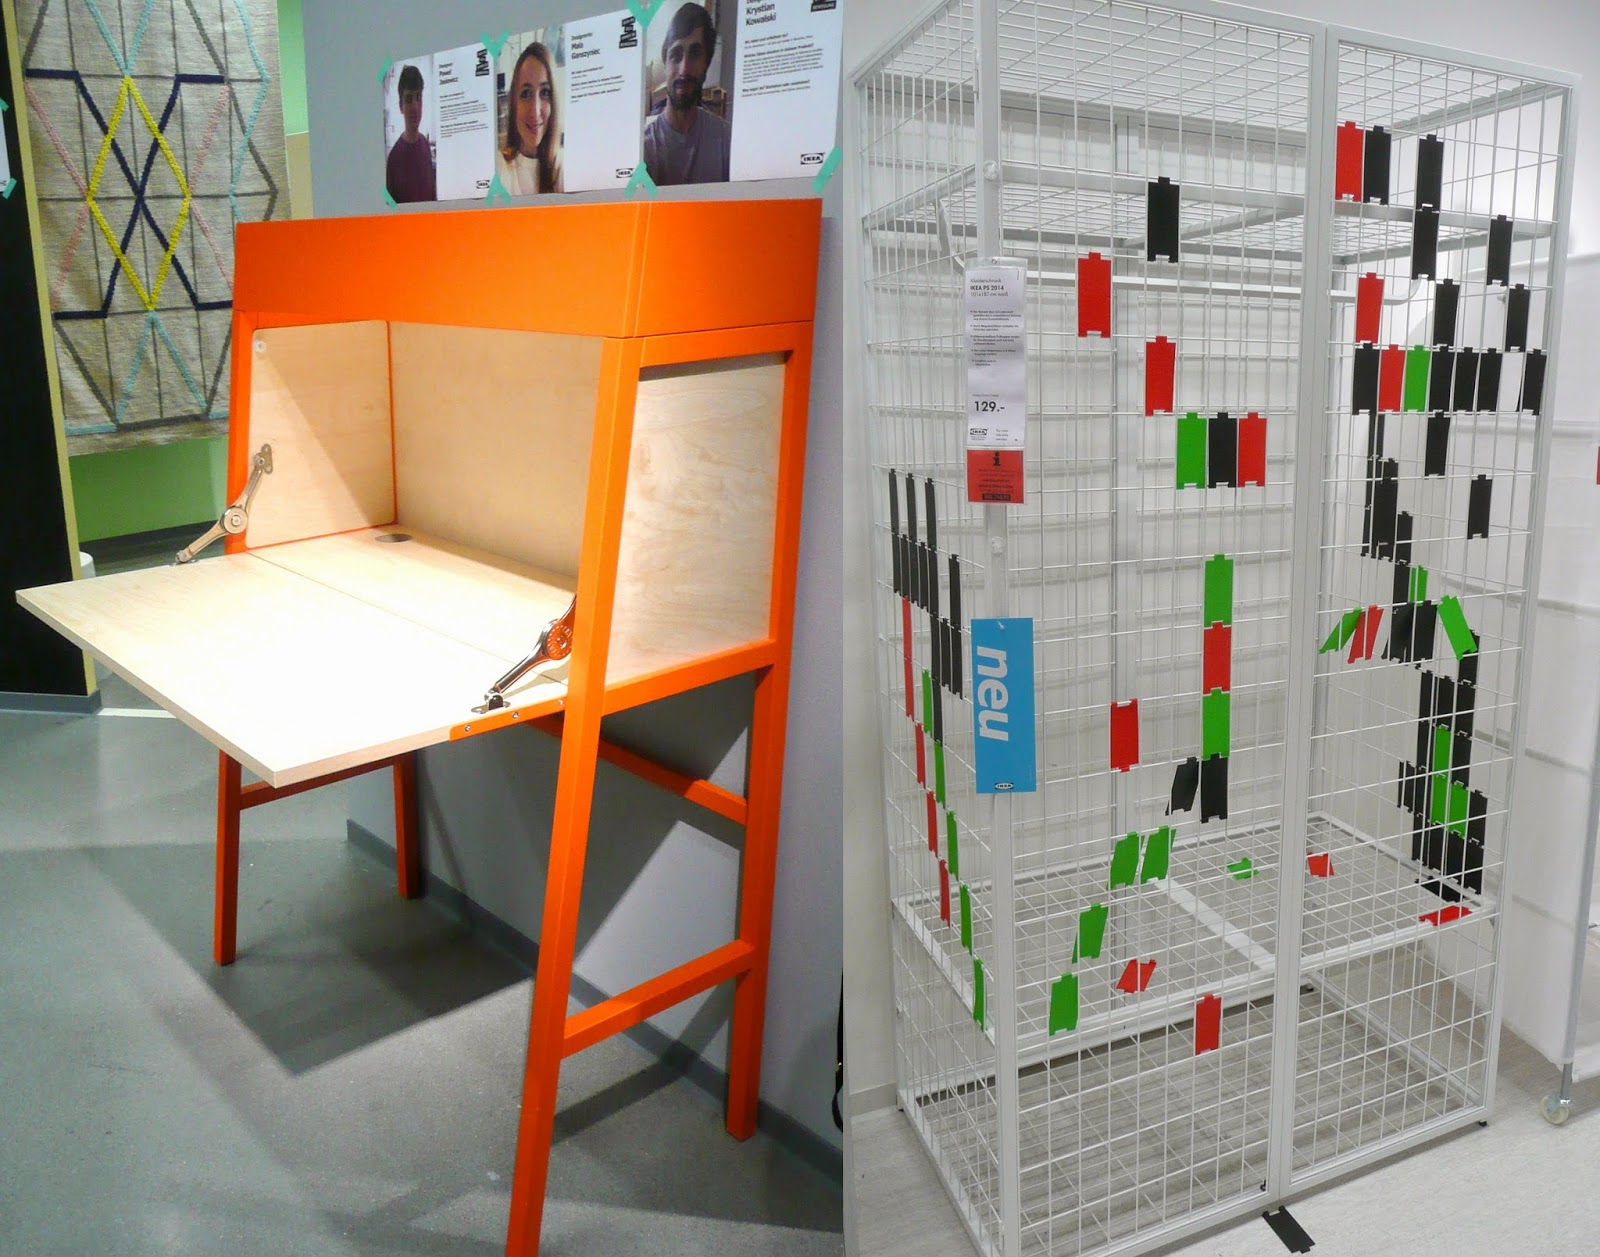 ikea the inner city strategy Target strategy: muji vs ikea october 30, 2014 december 8, 2014 / mujikea the targeting strategy of these furniture.